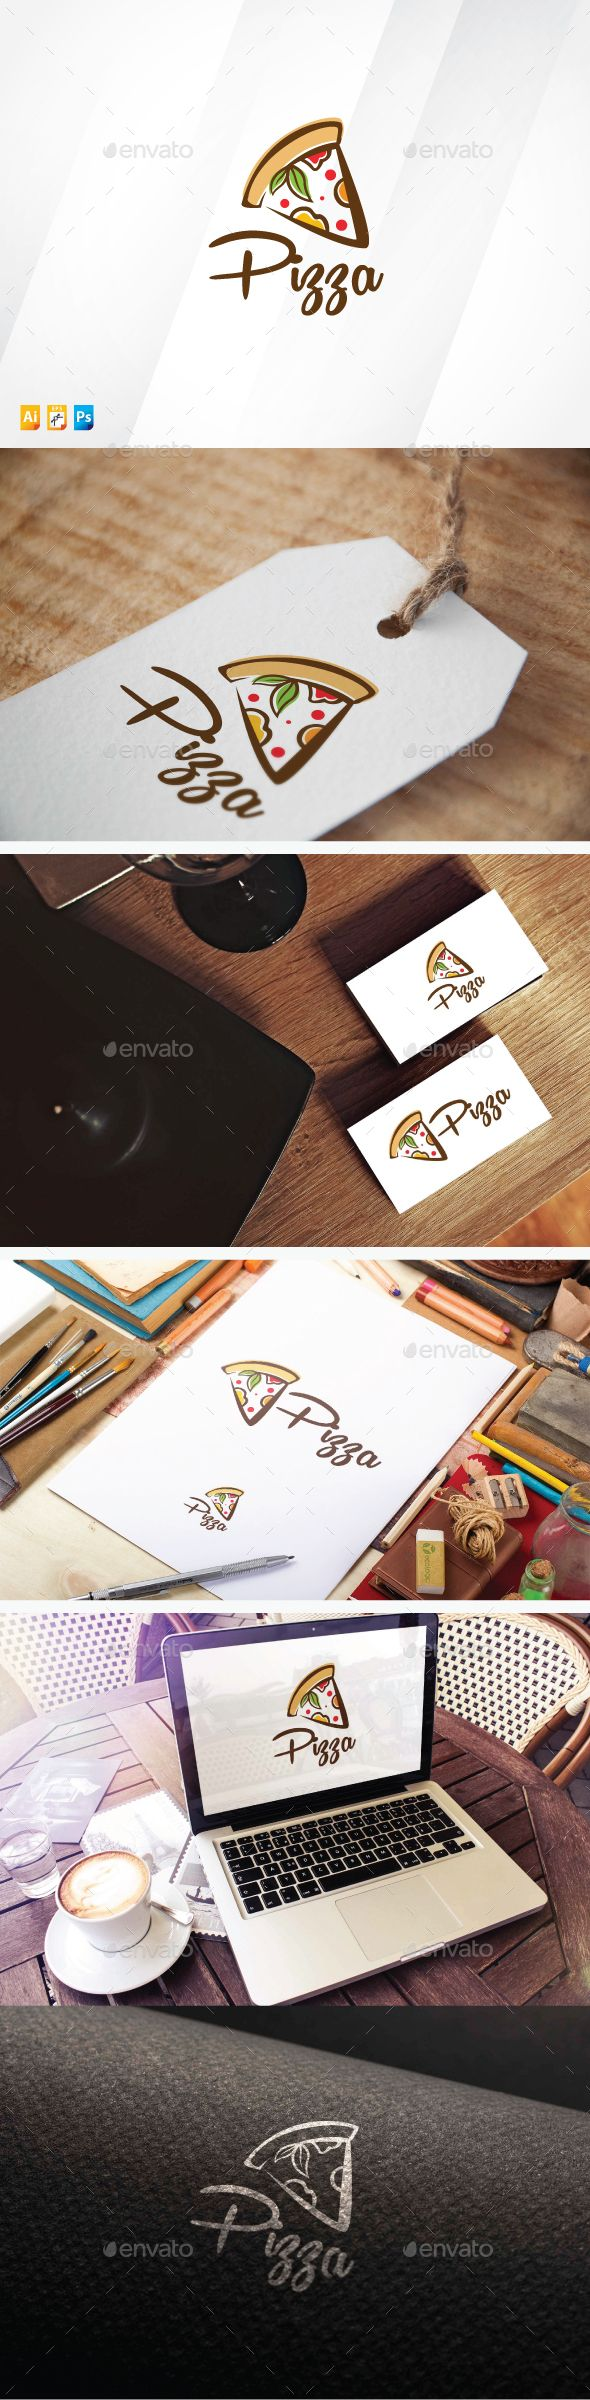 Organic Pizza — Photoshop PSD #vegetable #bakery • Available here → https://graphicriver.net/item/organic-pizza/13315958?ref=pxcr